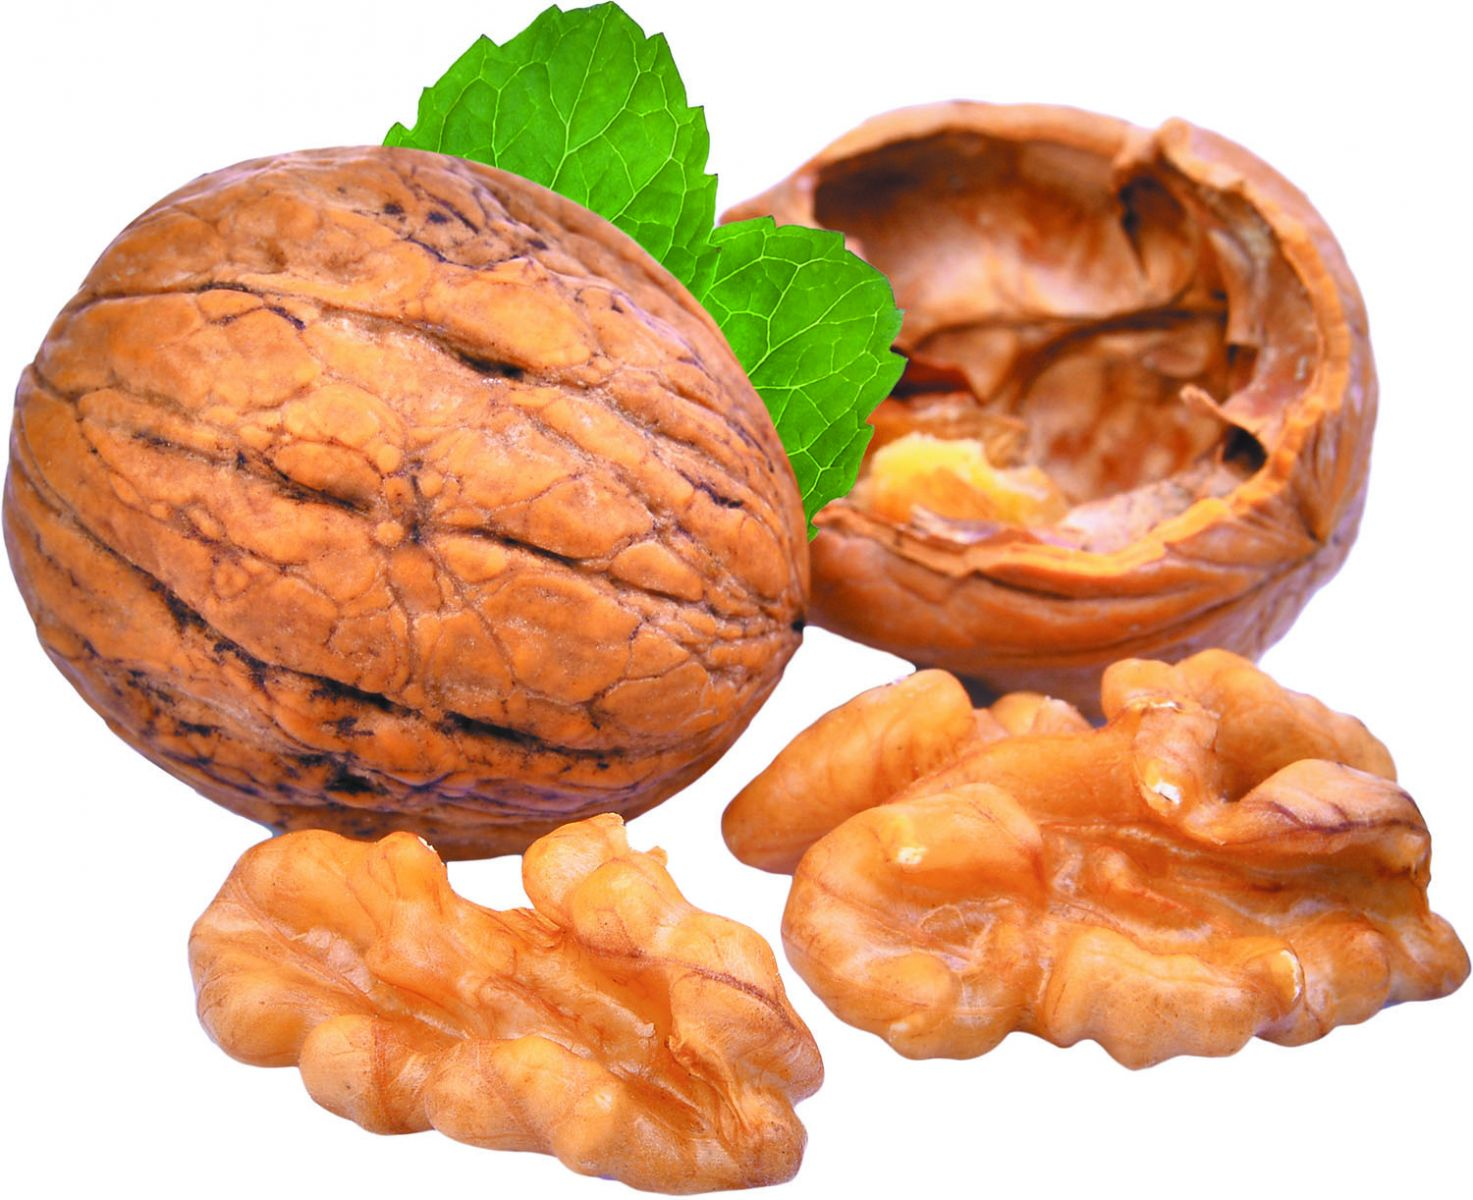 Why Walnuts May Help With Weight Loss Harvard Health